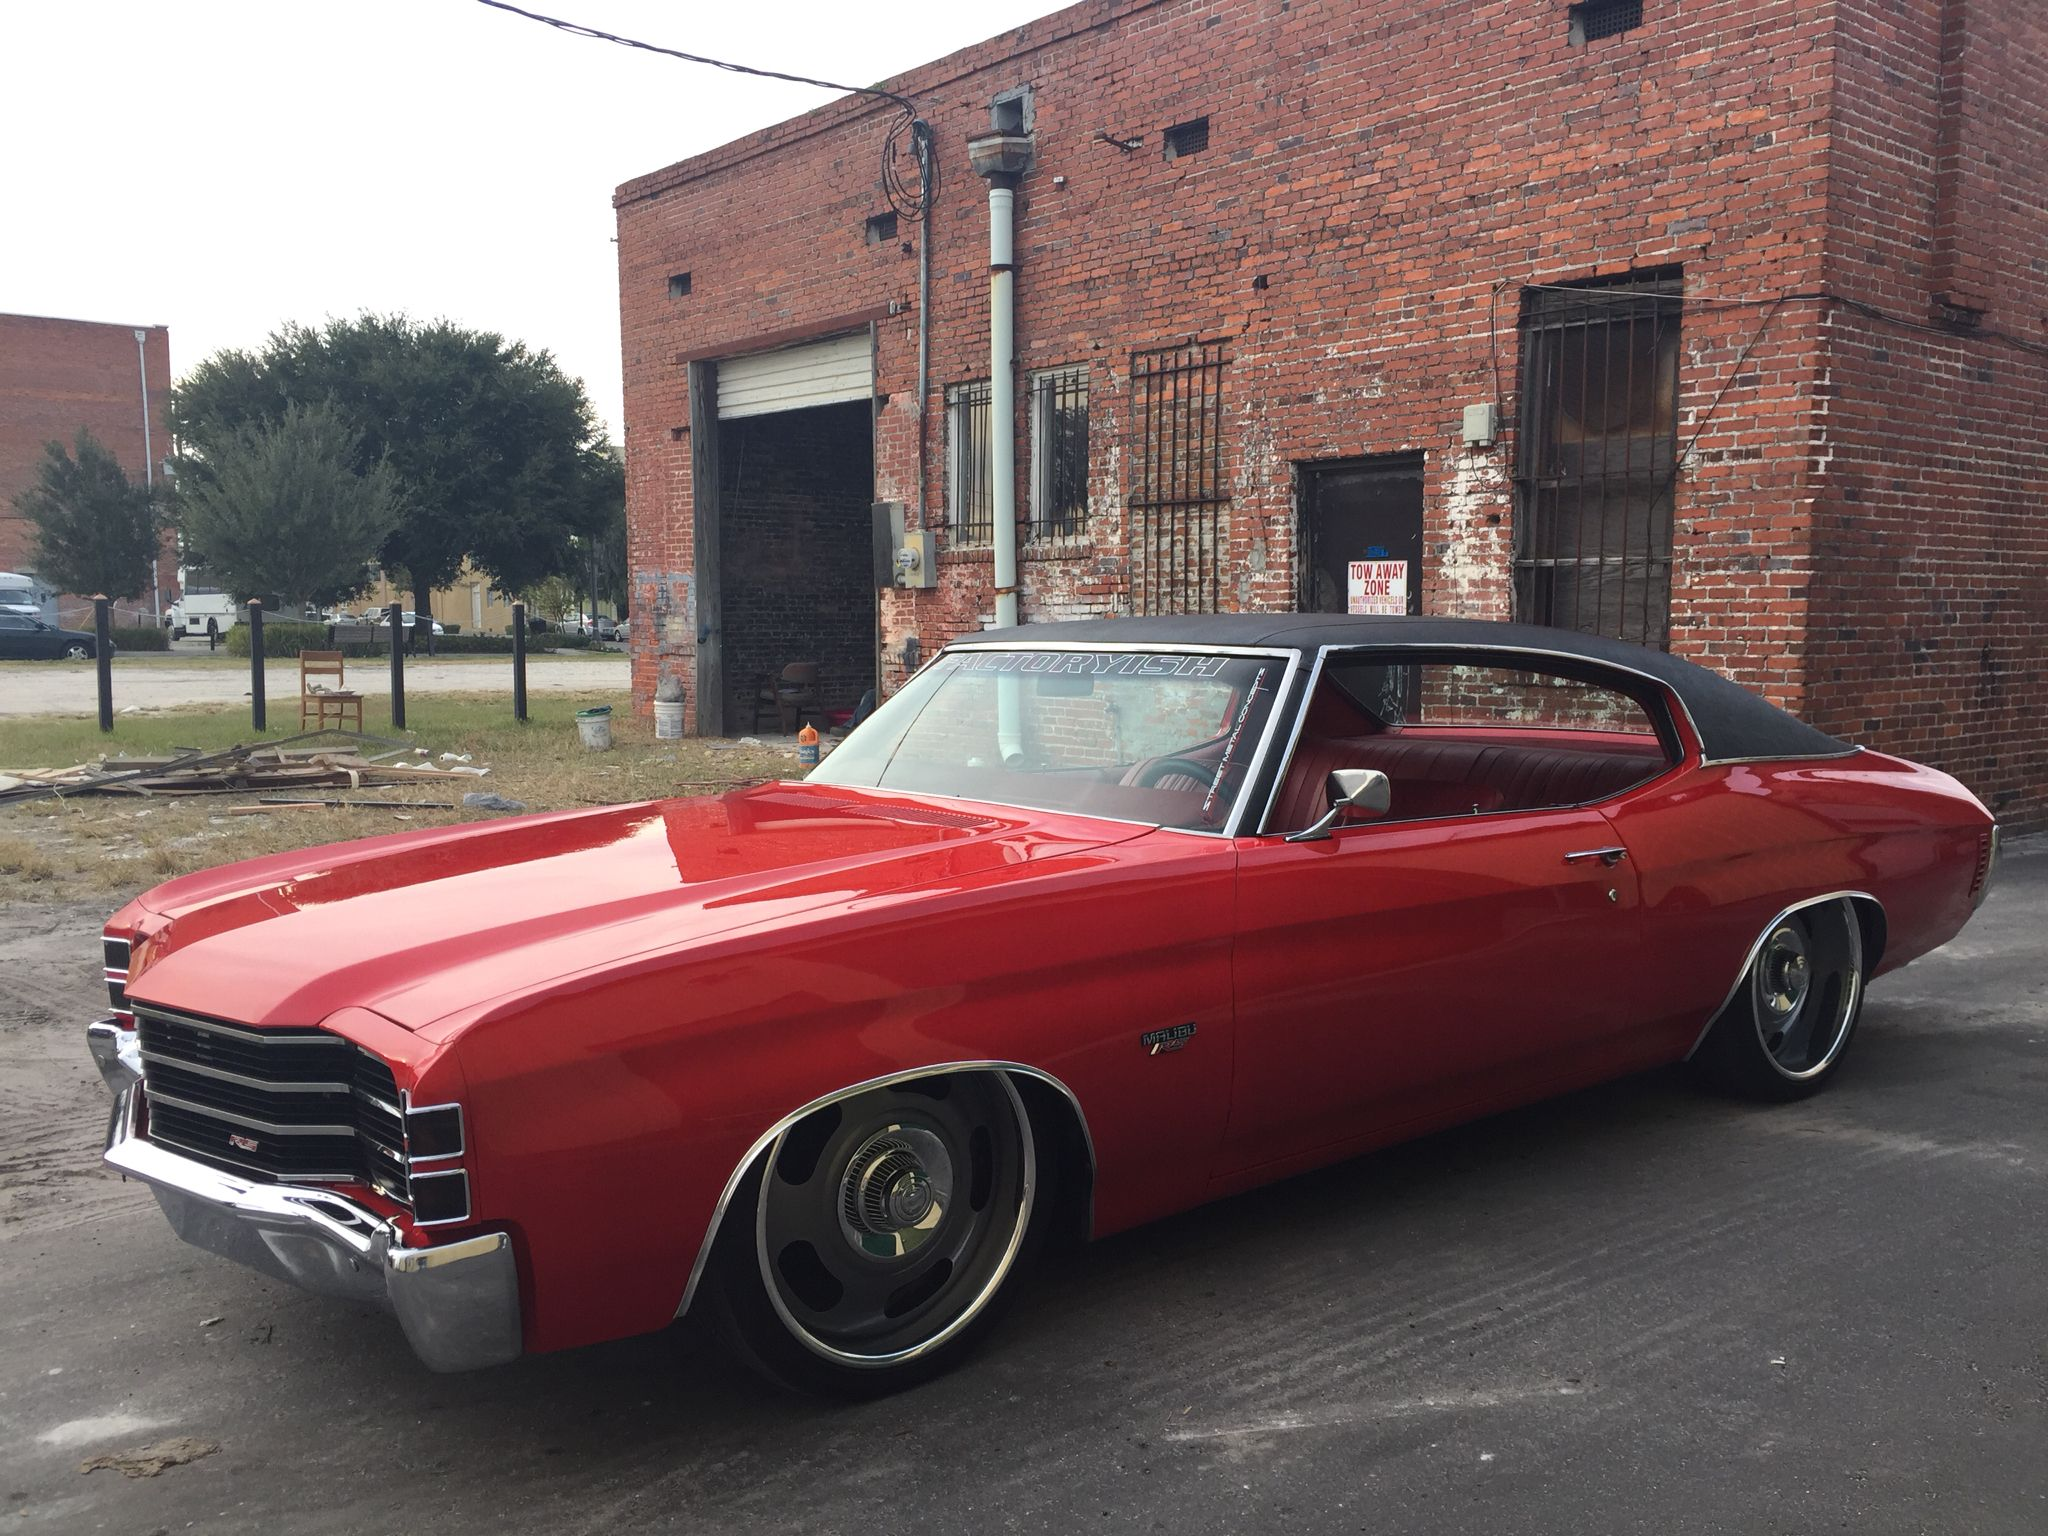 Chevelle blue metallic paint car pictures car canyon - 1972 Rs Chevelle Factoryish Bagged Custom Hideaway Headlight Grills Red Blacktouringcar